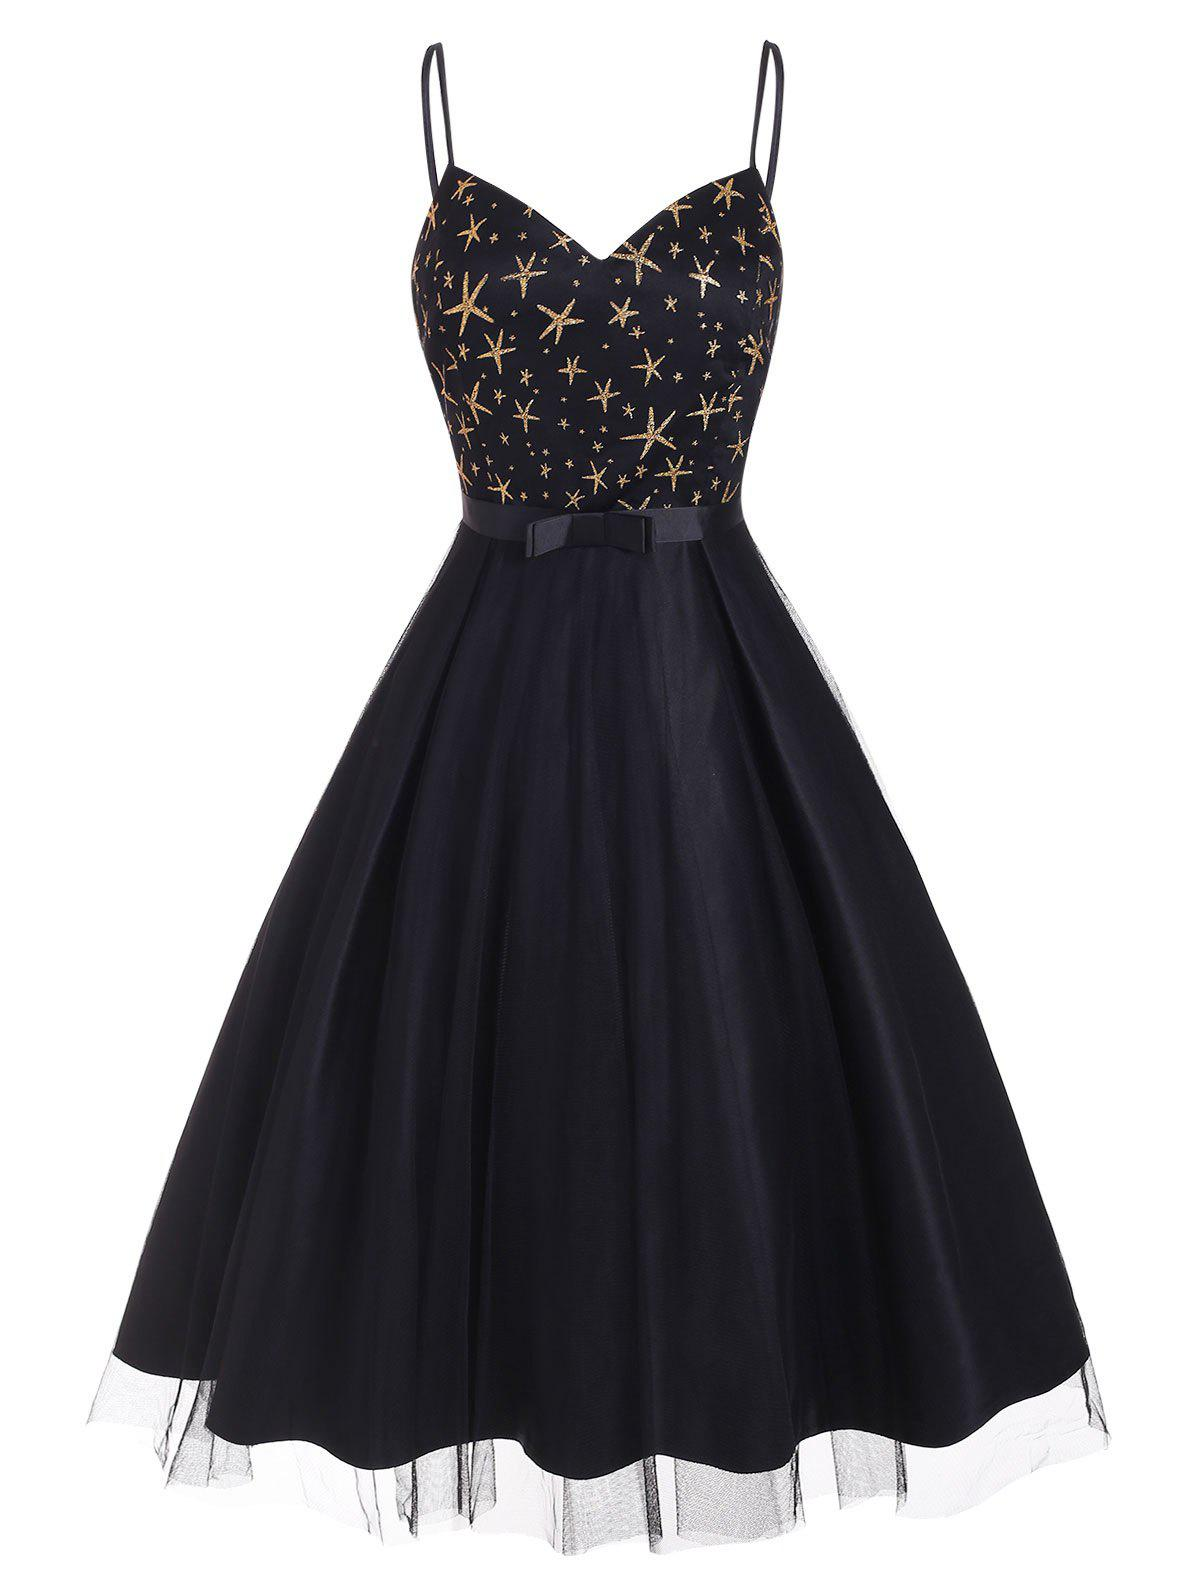 Sparkly Star Lace Overlay Cami Party Dress - BLACK M